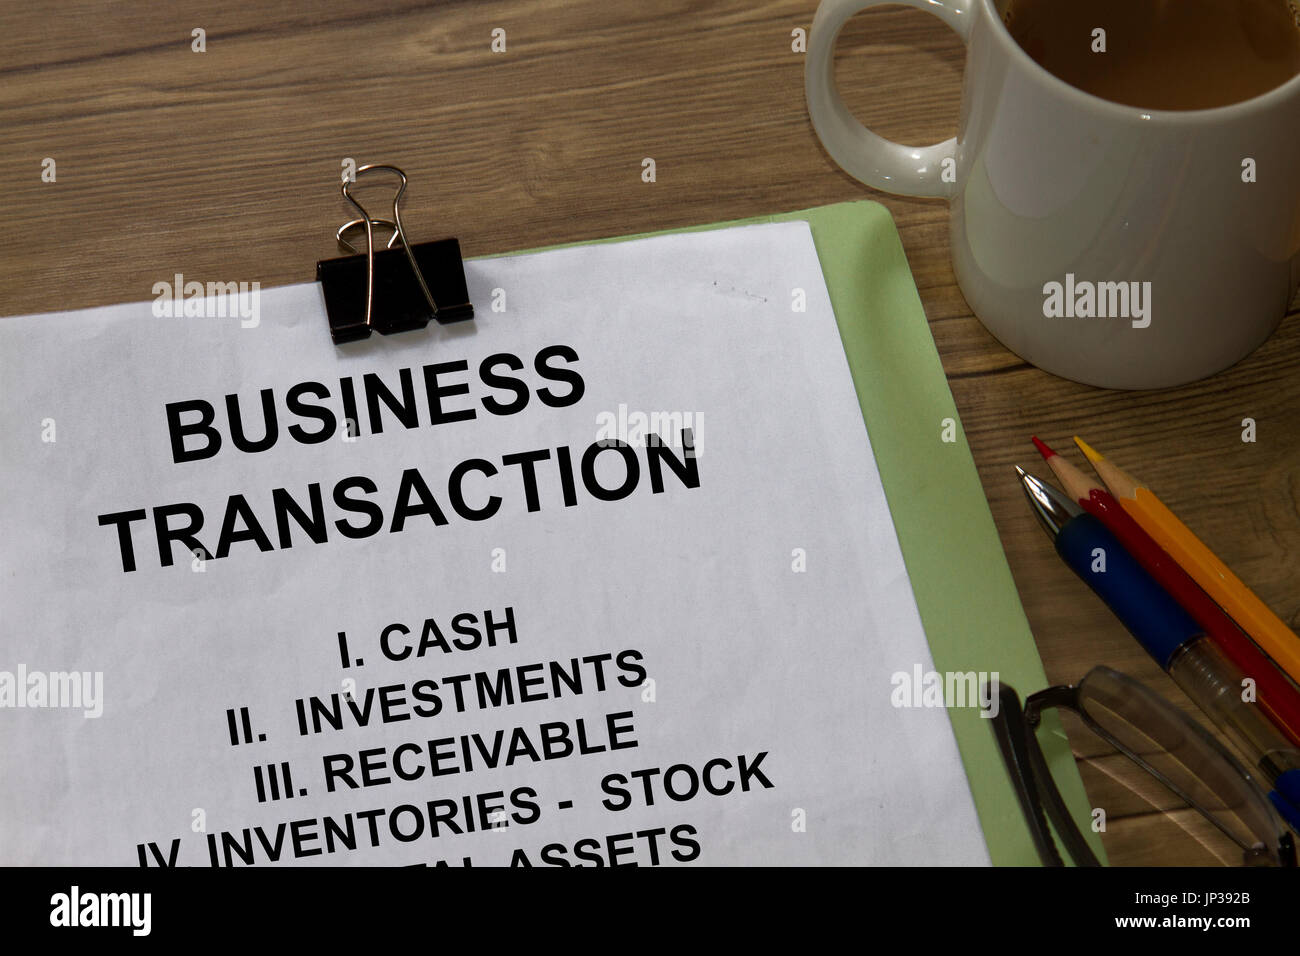 Business Transaction- concept for investment and related subject. - Stock Image